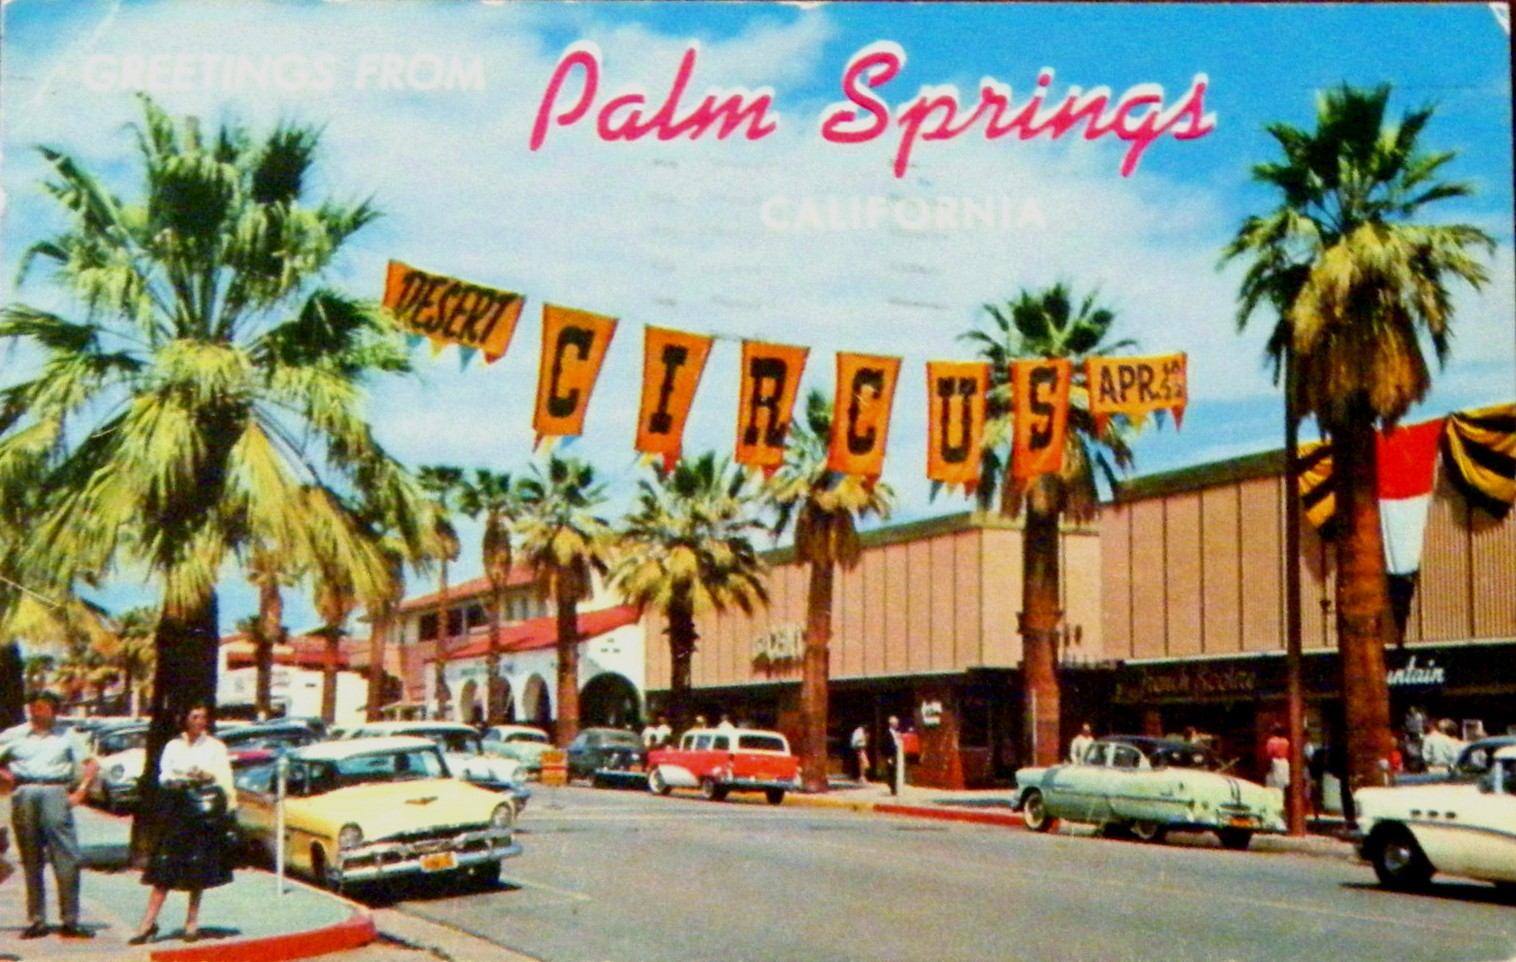 http://upload.wikimedia.org/wikipedia/commons/4/44/Greetings_from_Palm_Springs_-_Palm_Canyon_Drive_postcard_(1950s).jpg